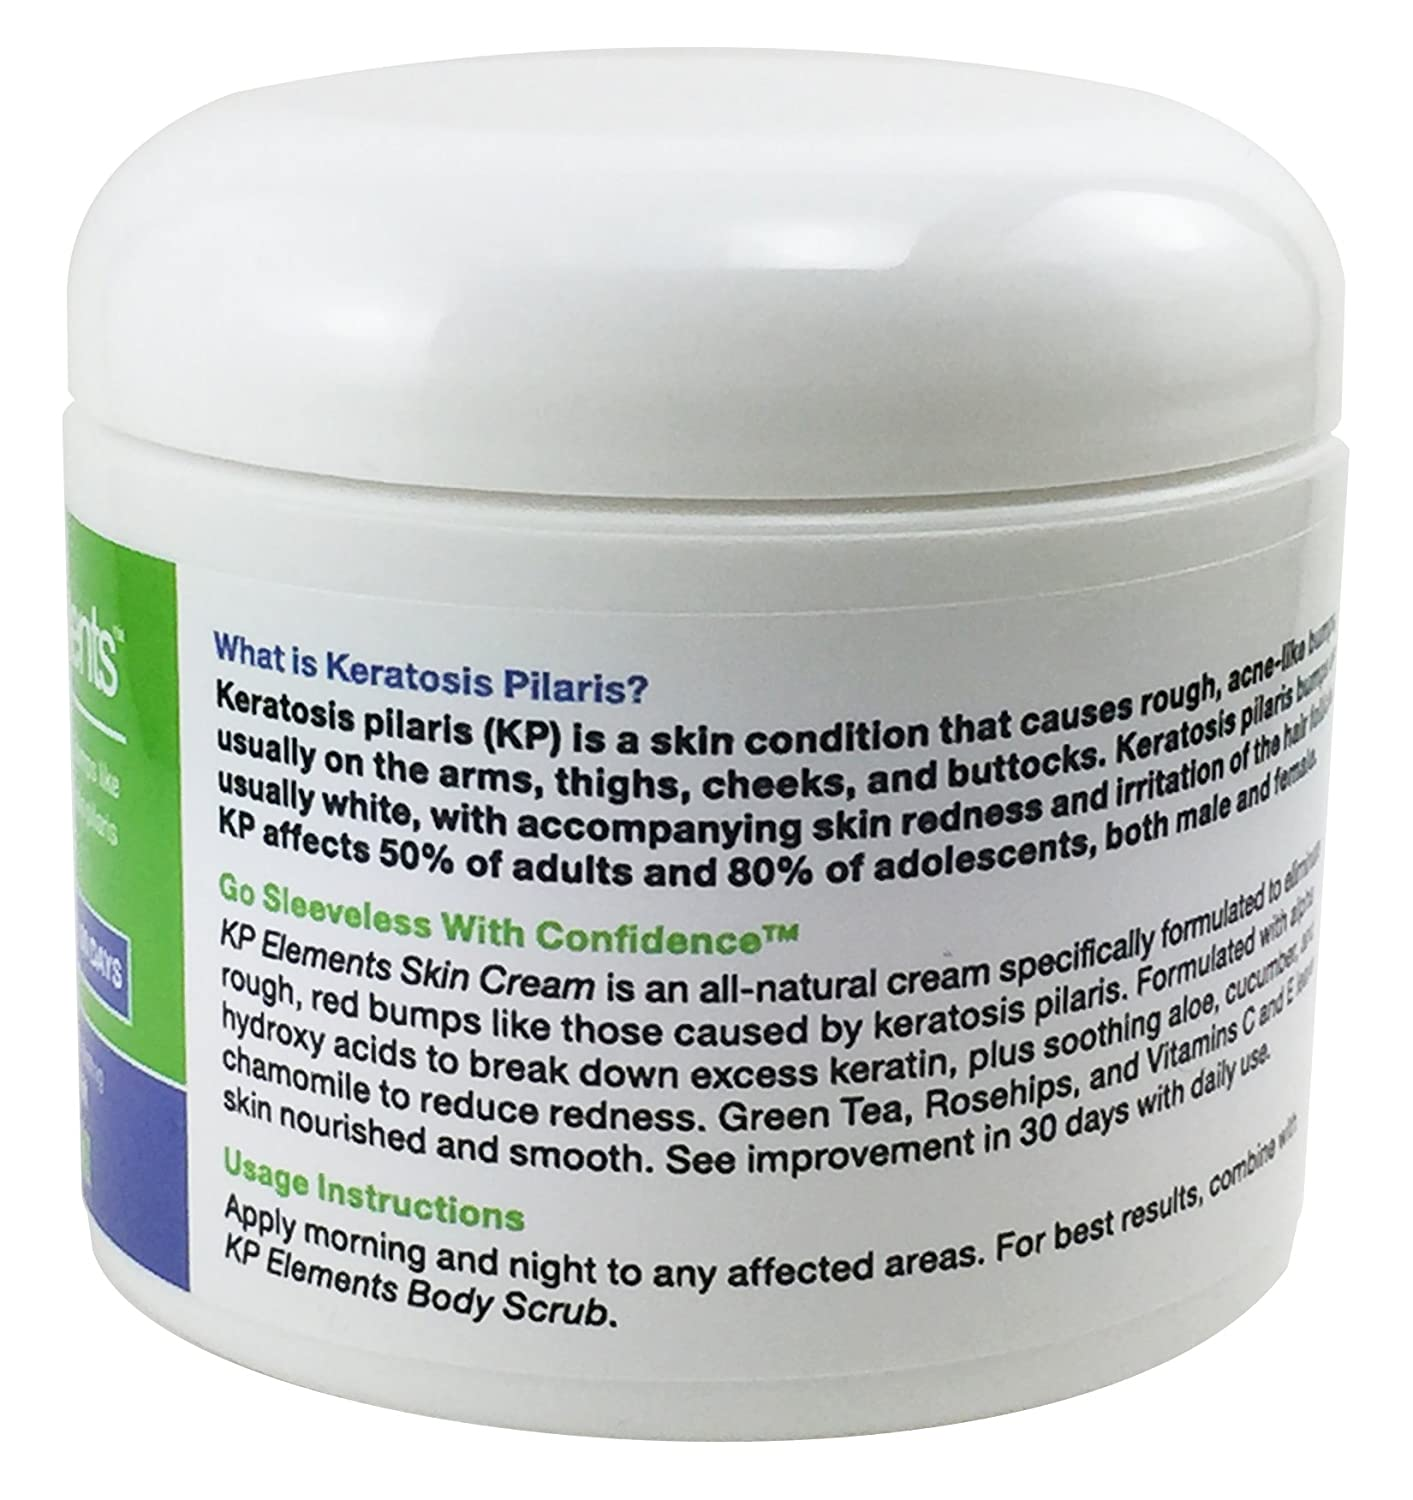 Amazon : Kp Elements Keratosis Pilaris Treatment Cream  Keratosis  Pilaris Cream For Arms And Thighs  Clear Up Red Bumps Today Bybining  Our Kp